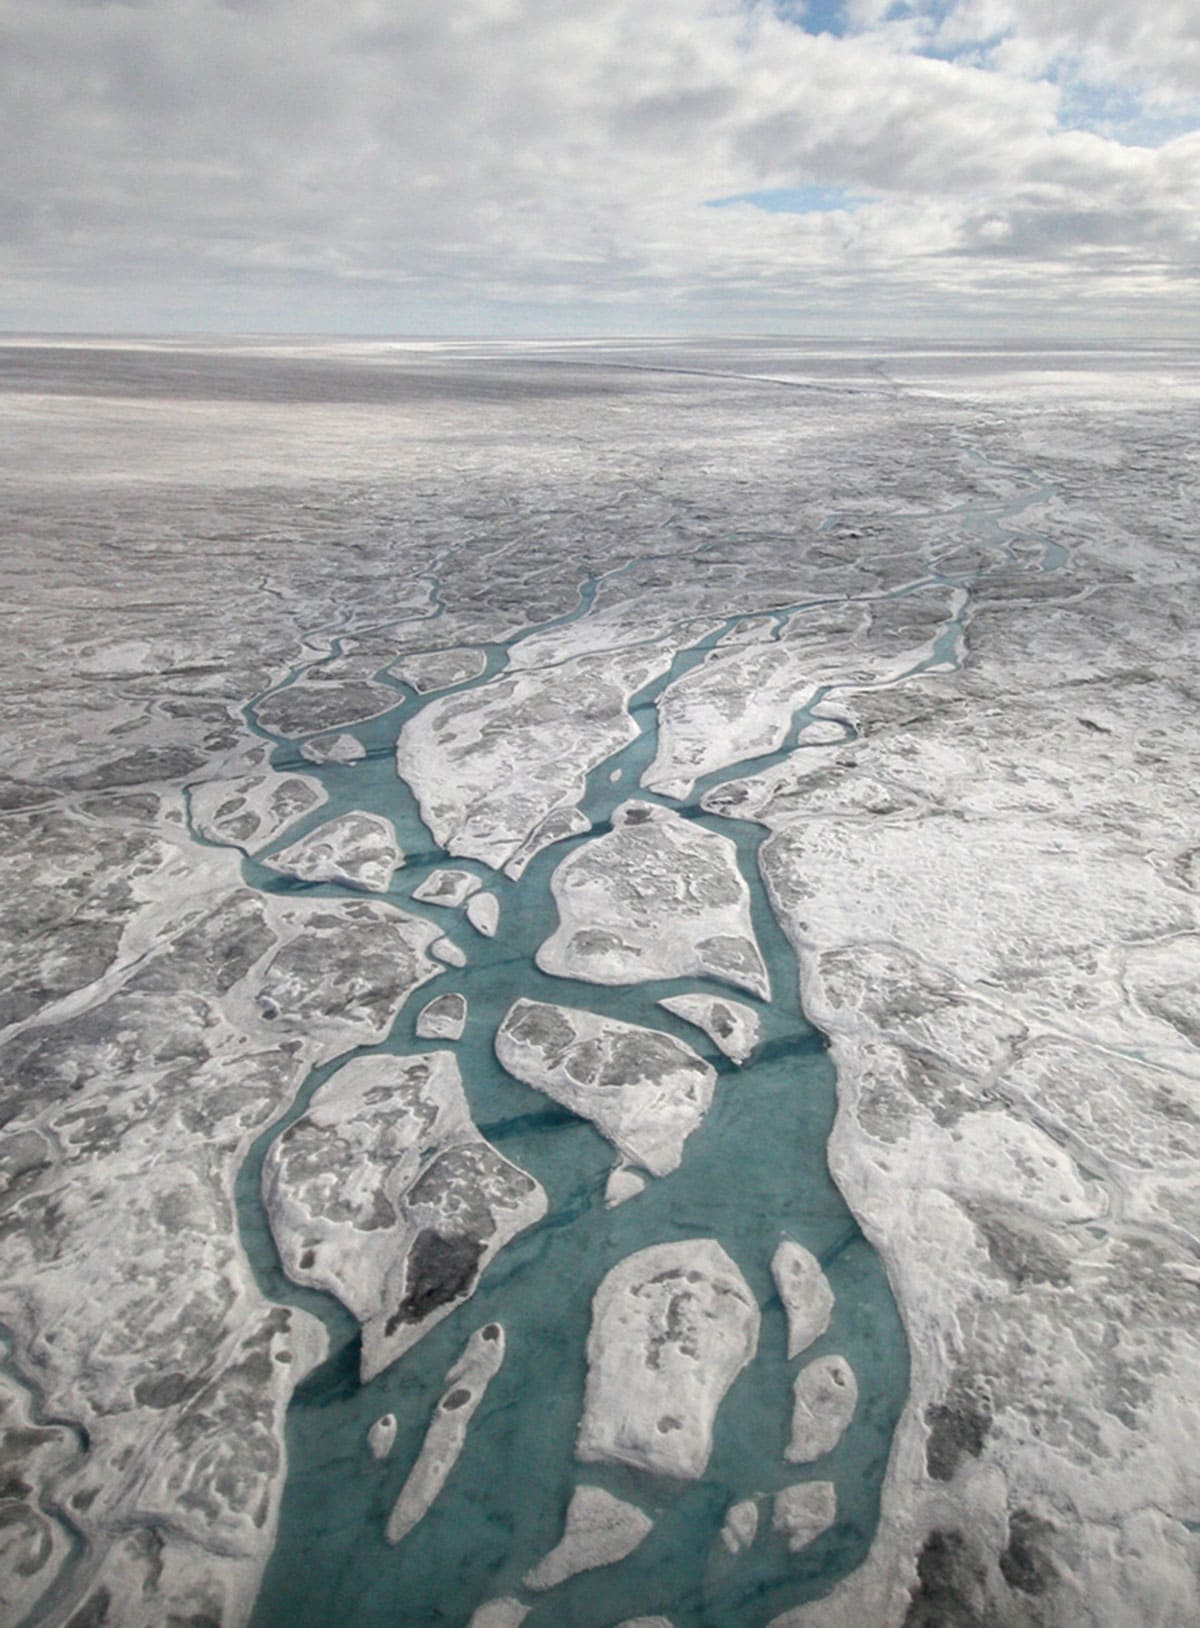 There are more than 50 lakes lies beneath the Greenland Ice Sheet